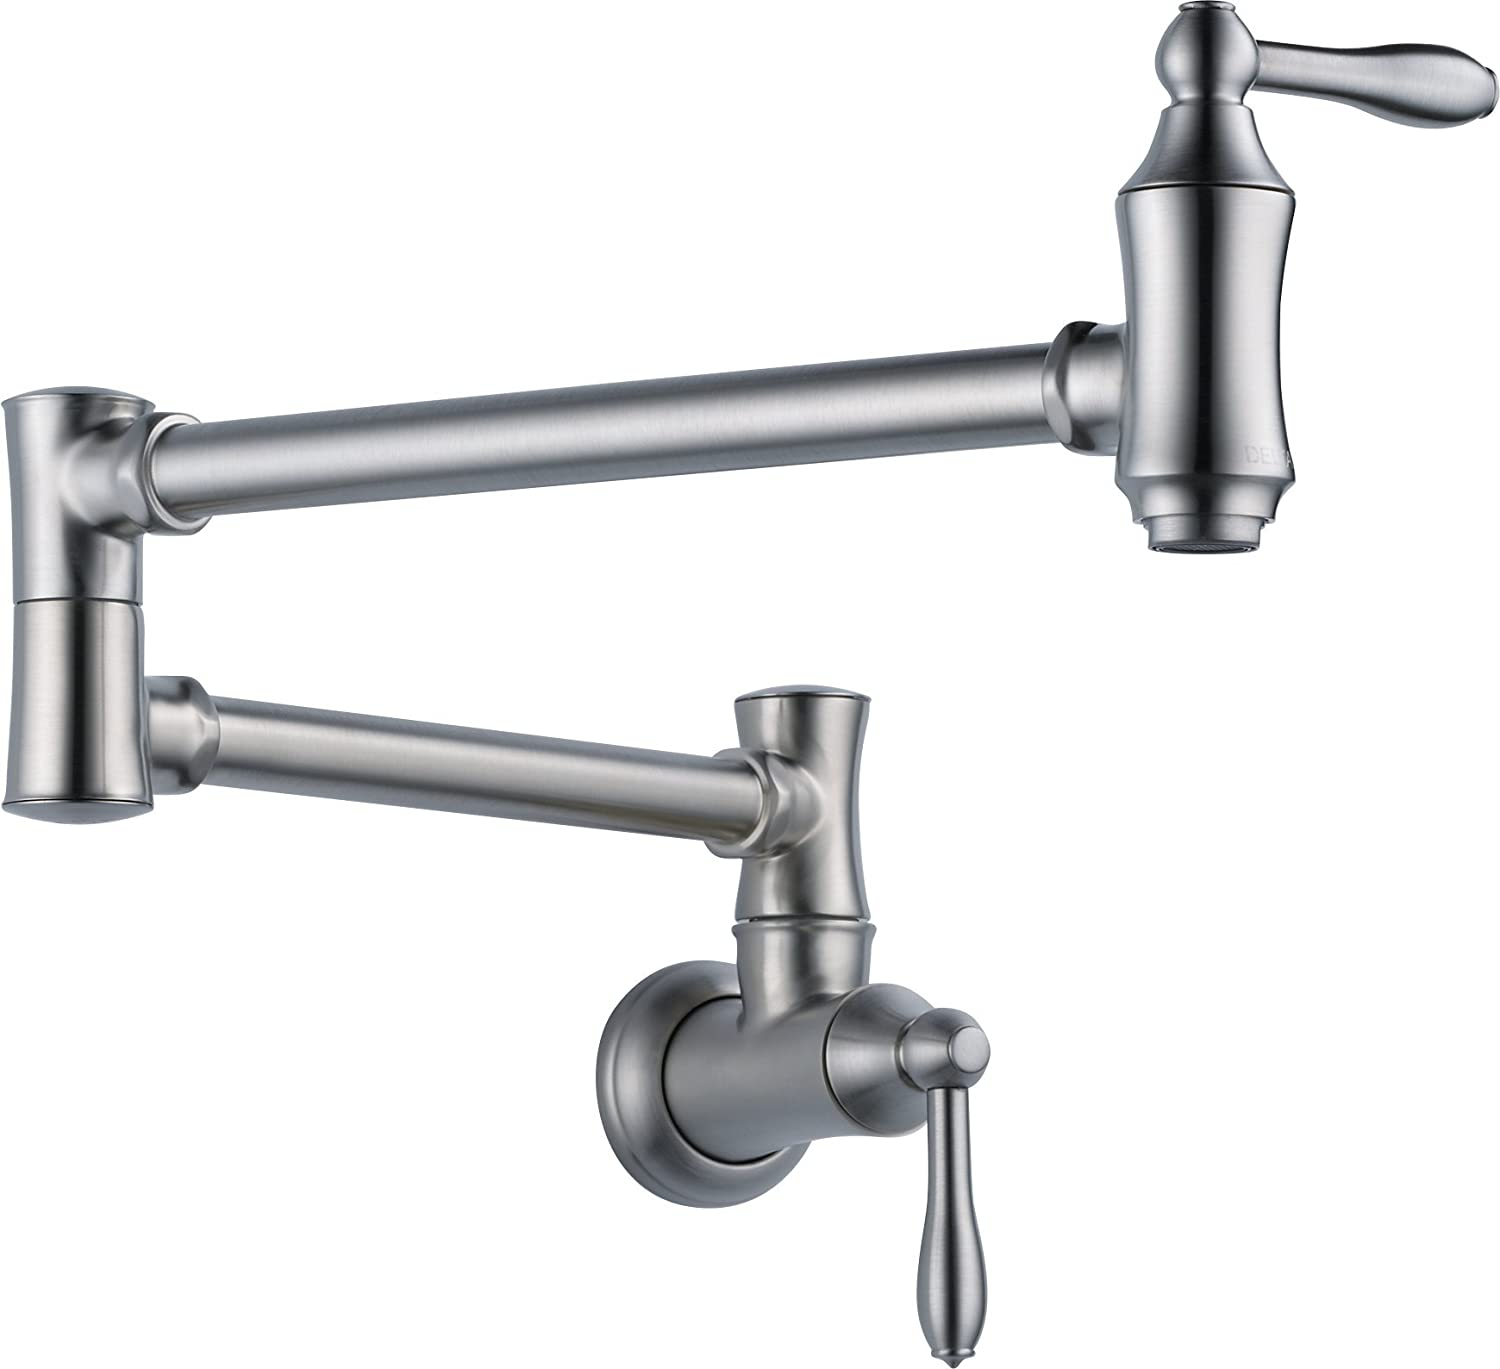 3. Delta Faucet 1177LF-AR Wall Mount Pot Filler